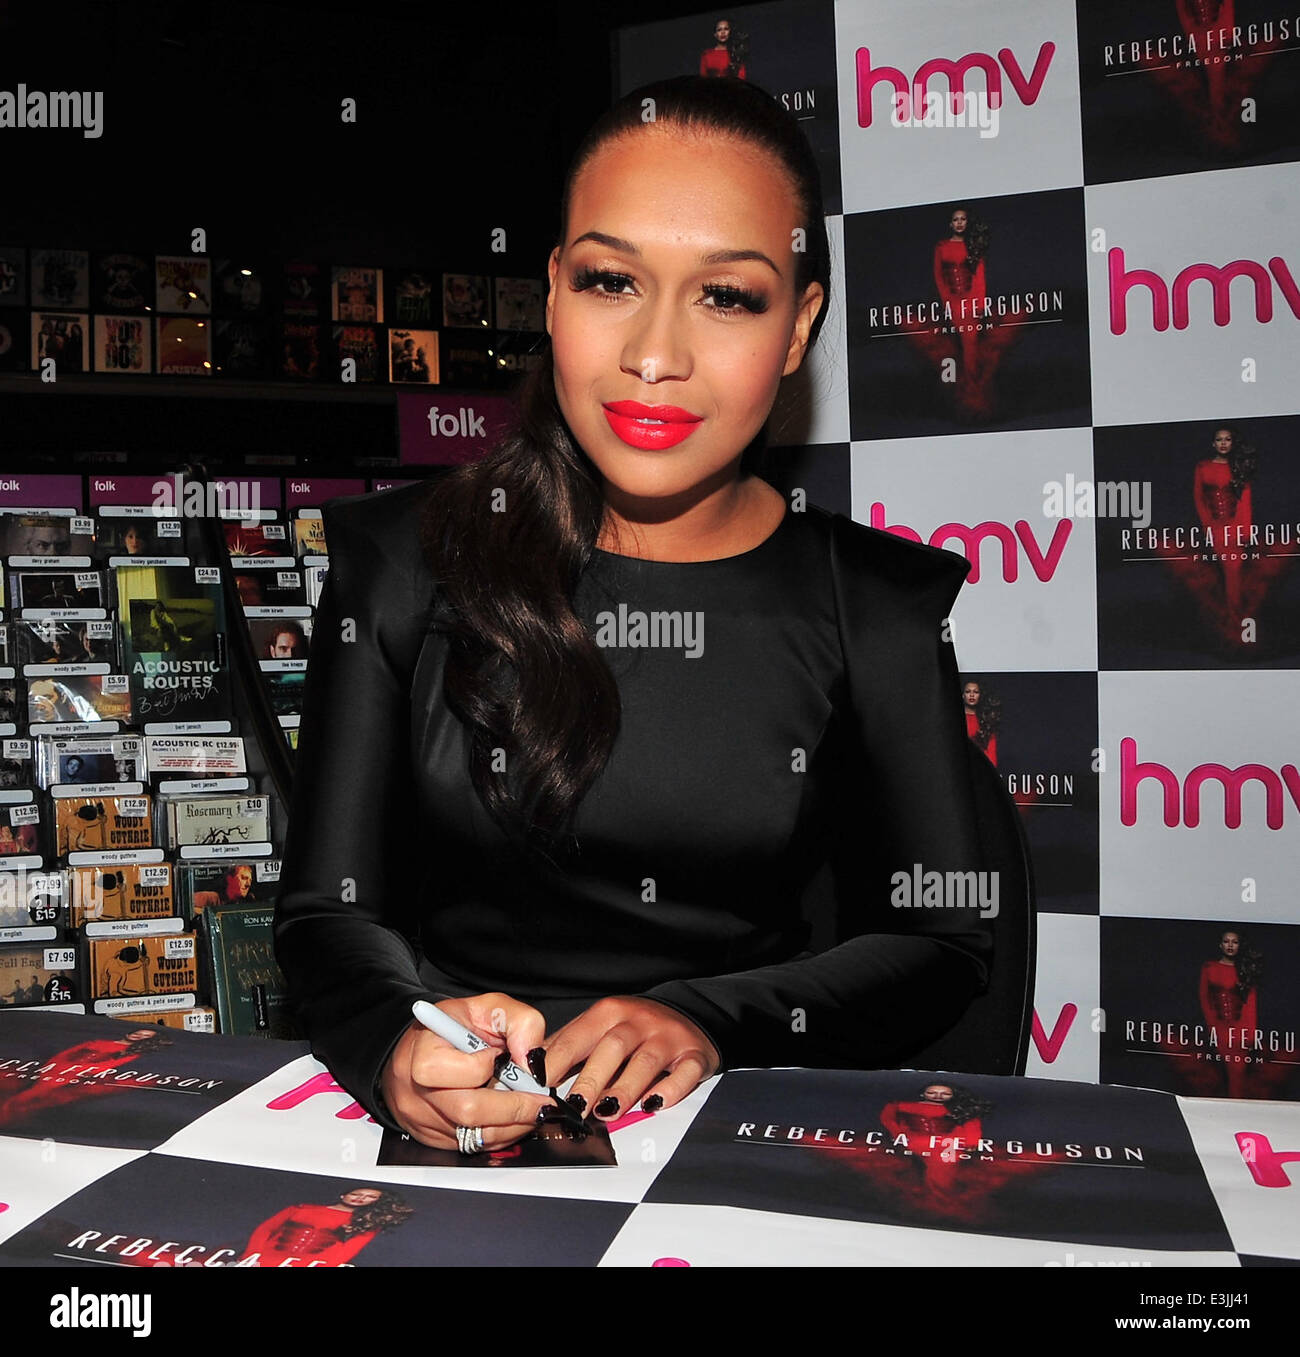 Rebecca Ferguson was in Liverpool to launch her new Album at